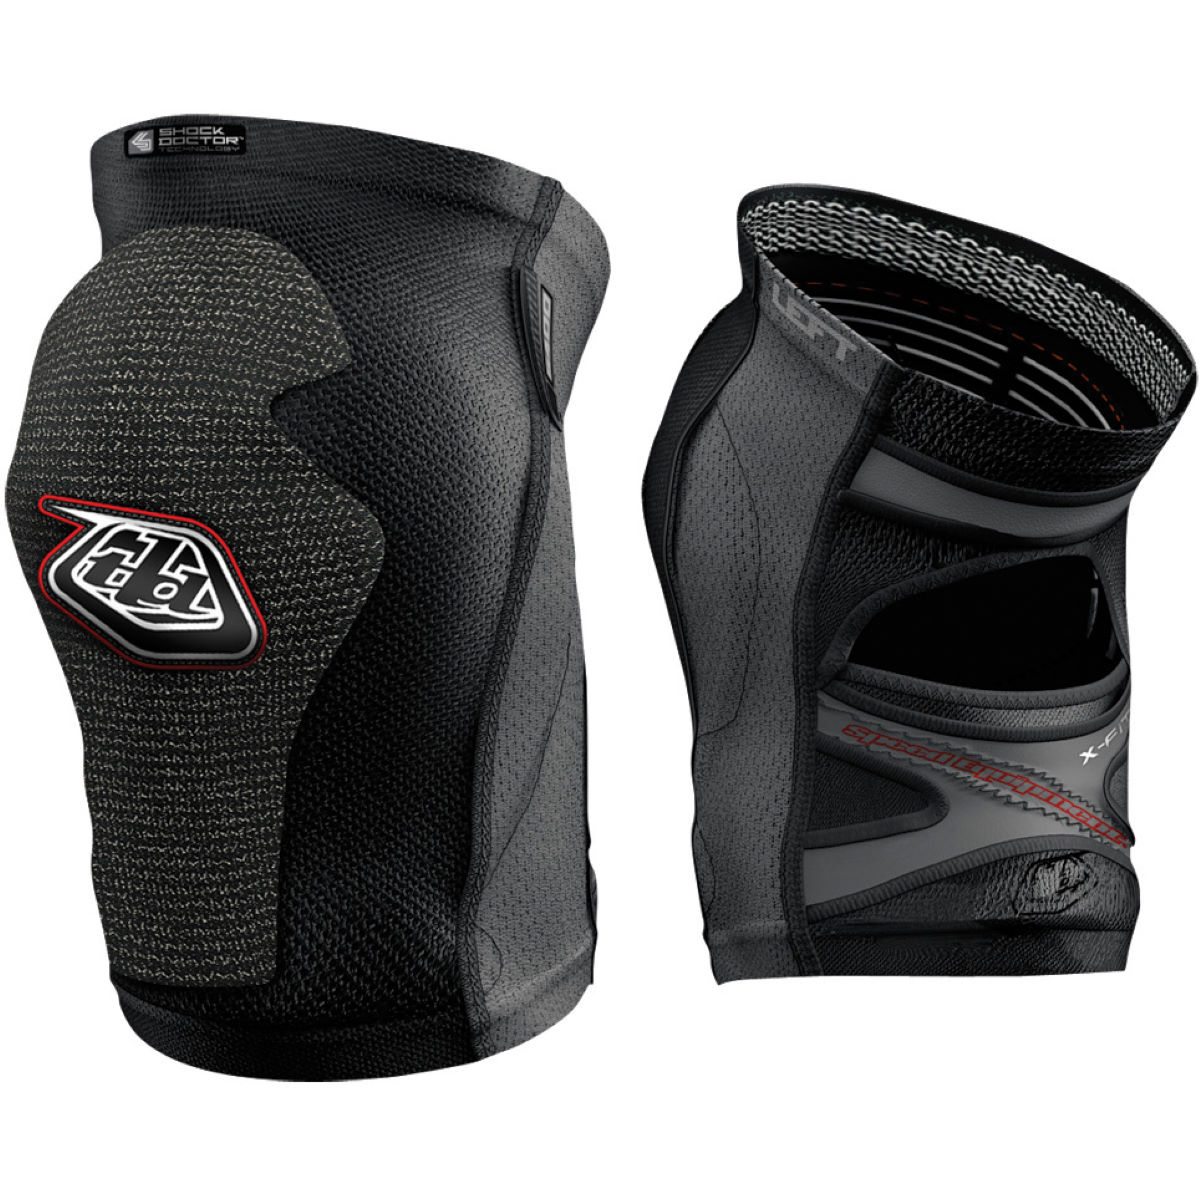 Genouillères Troy Lee Designs 5400 - XS Noir Protections